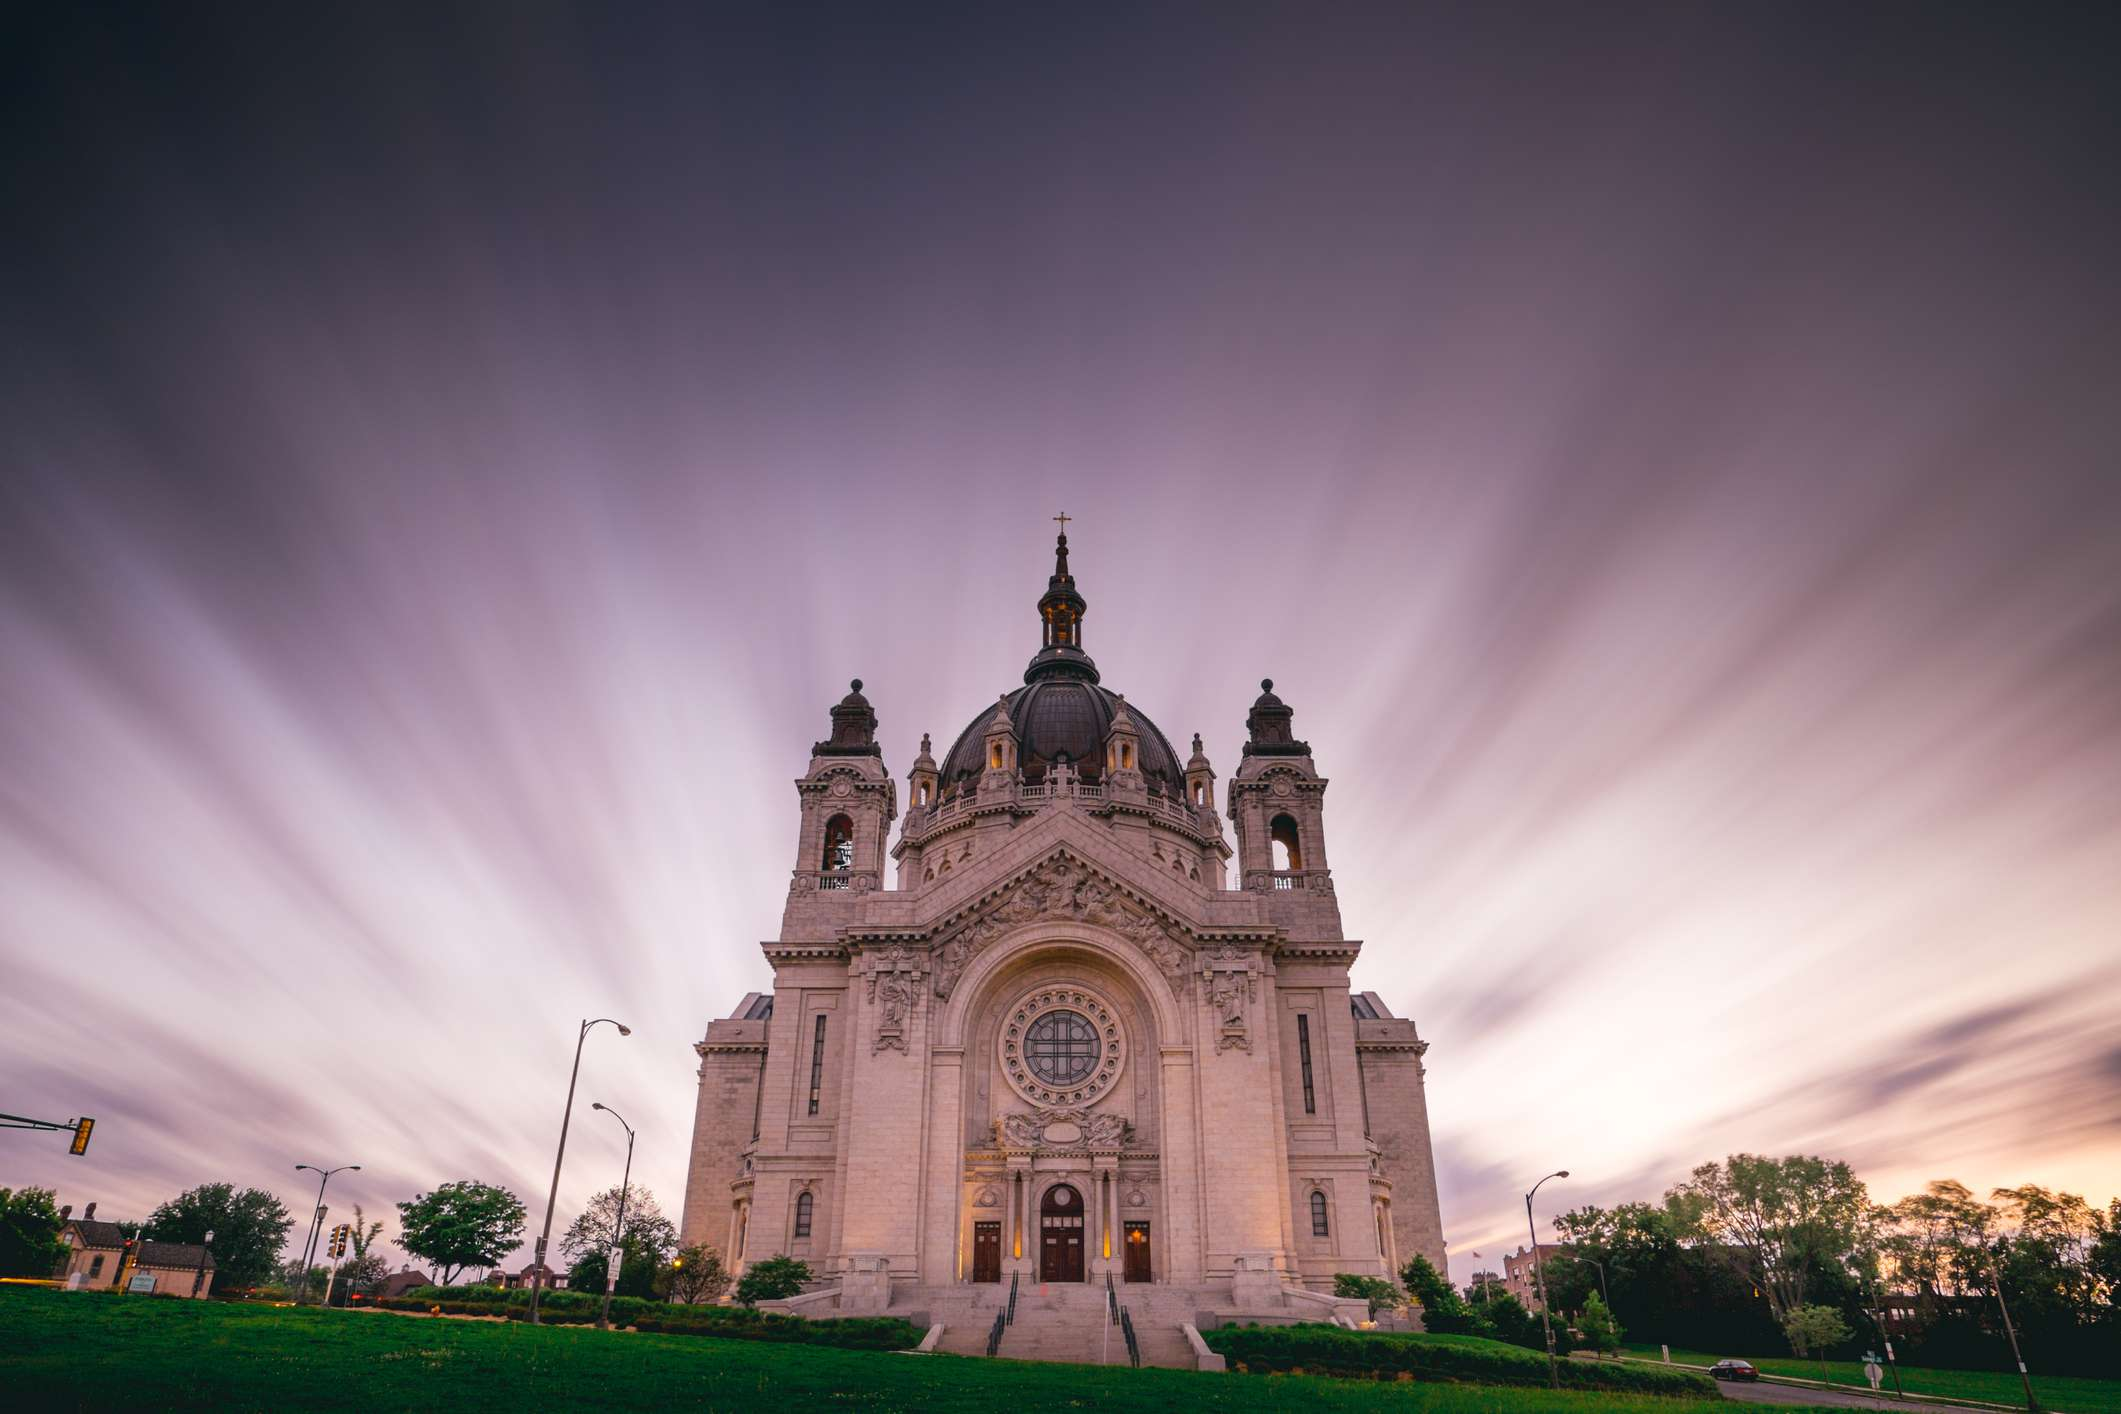 Cathedral of St. Paul in Minnesota